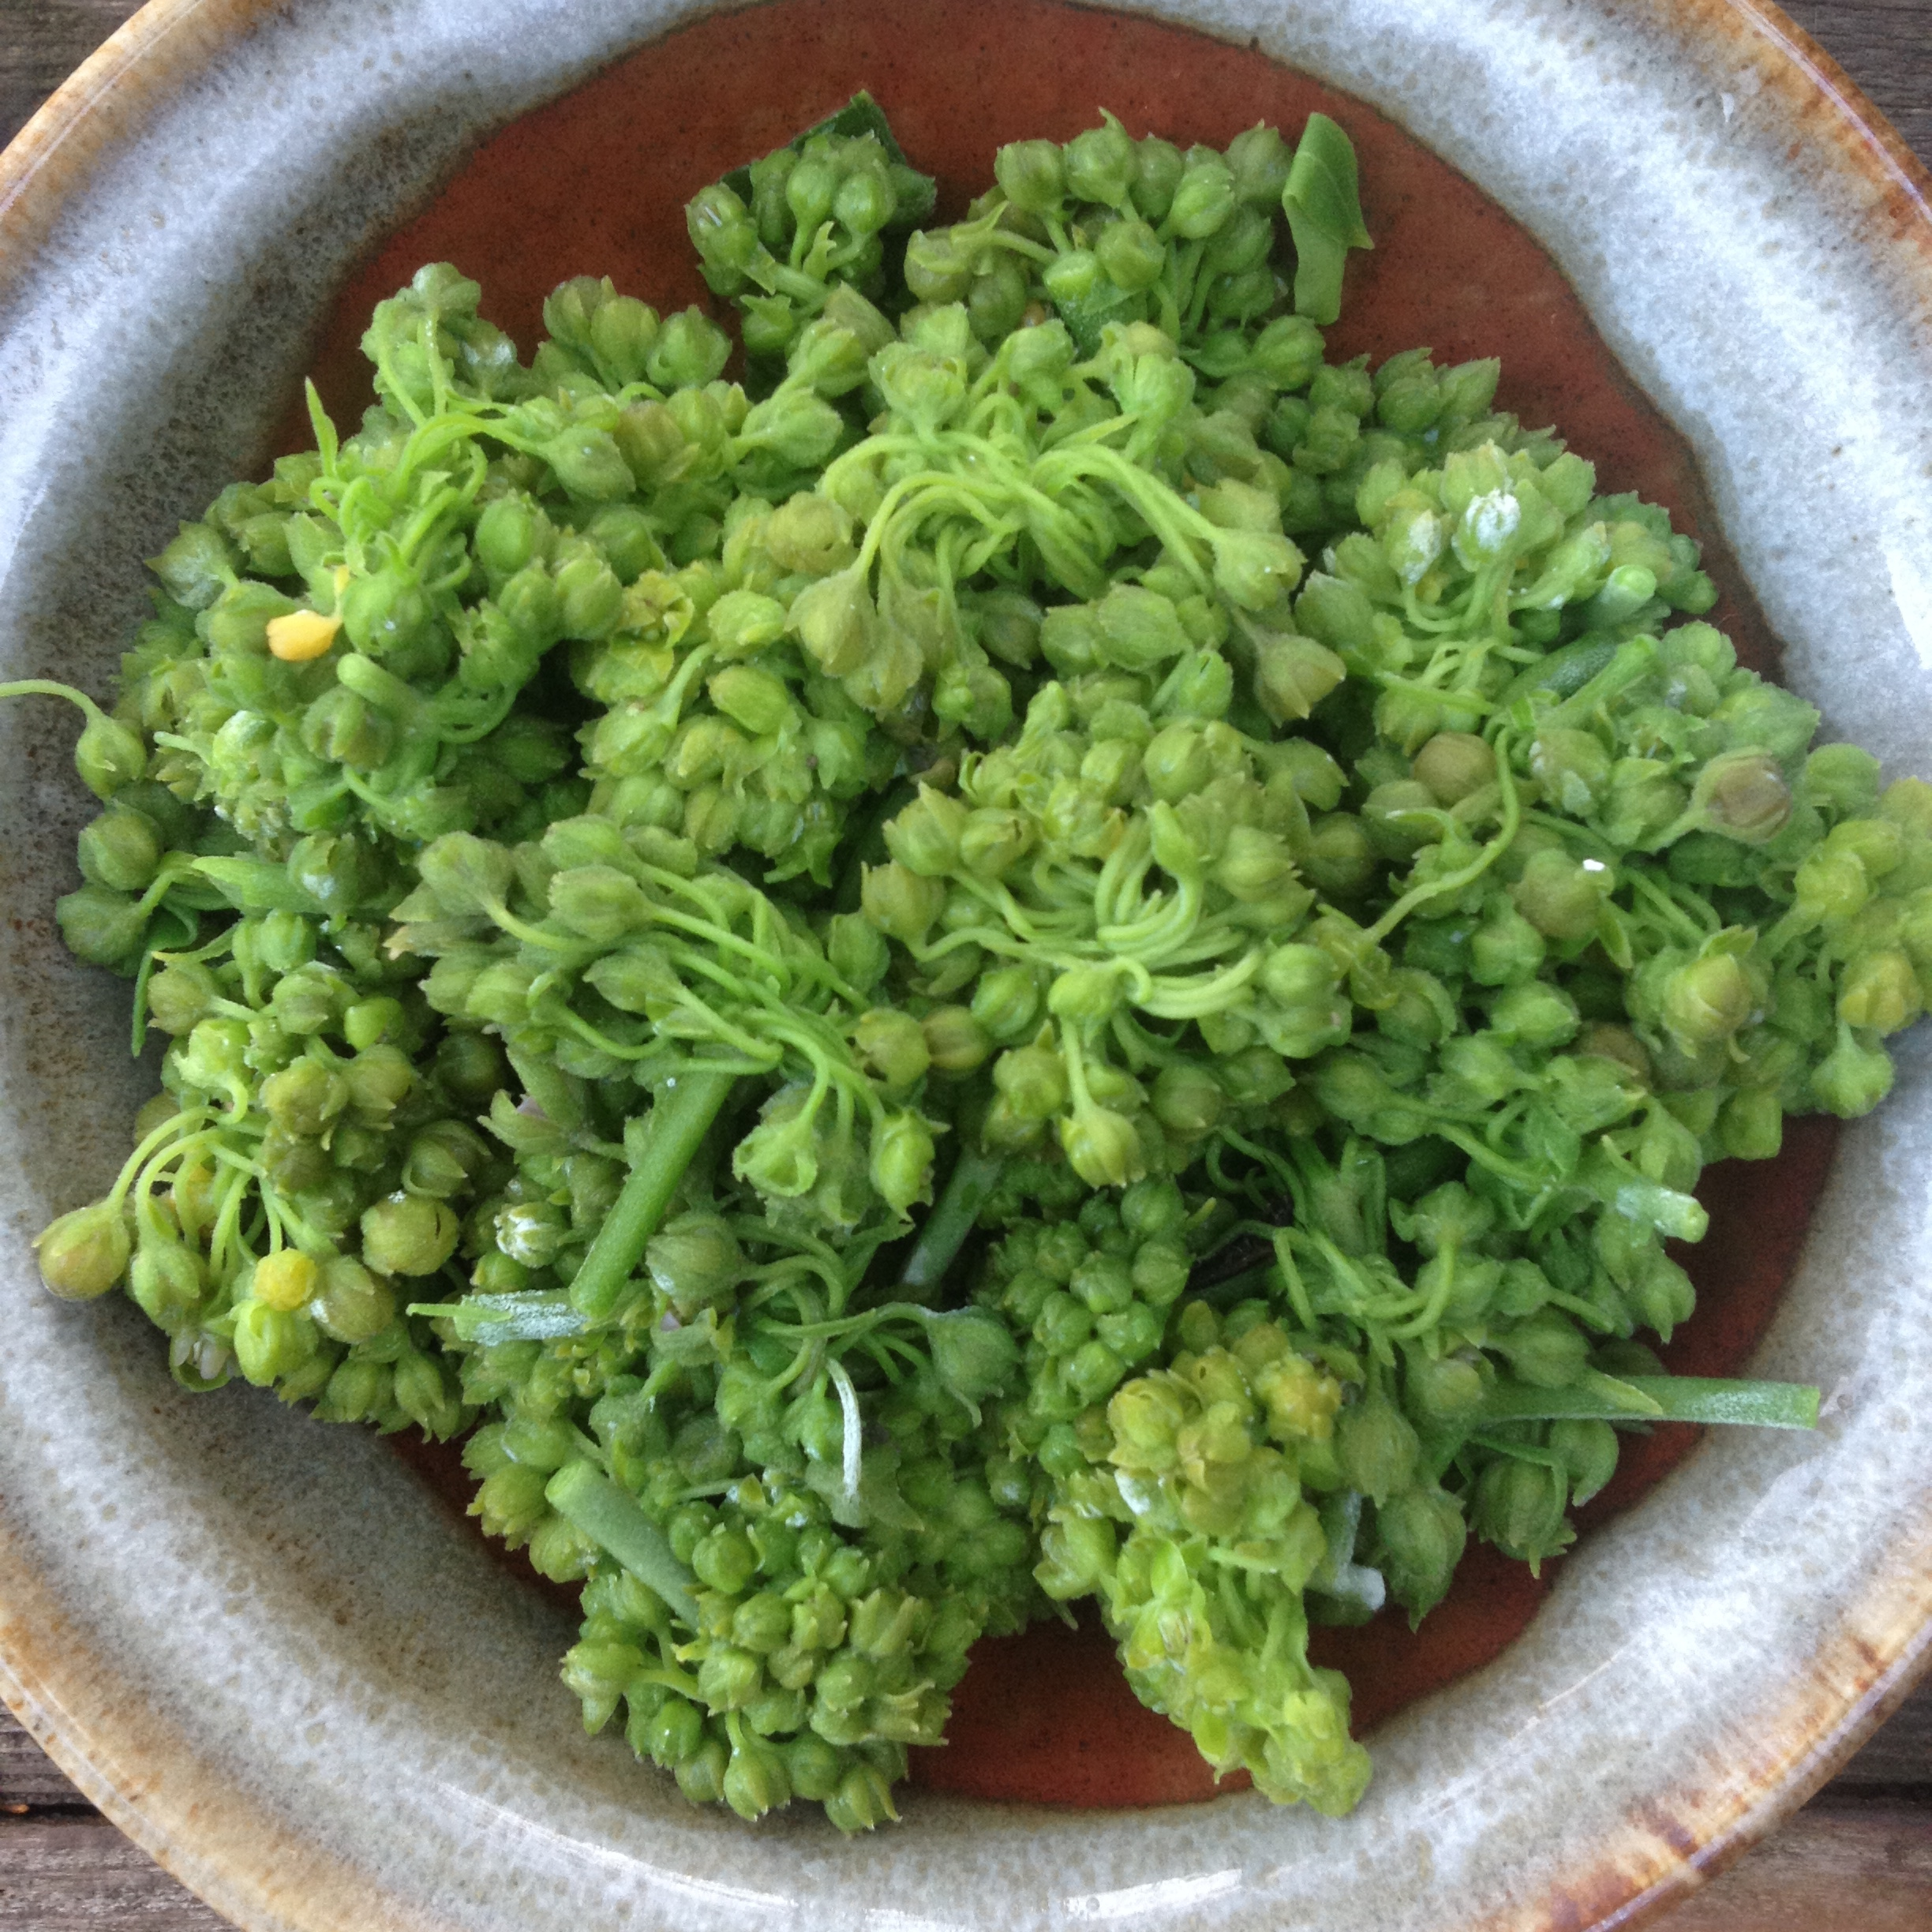 After blanching, the flowers take on a vibrant green color.